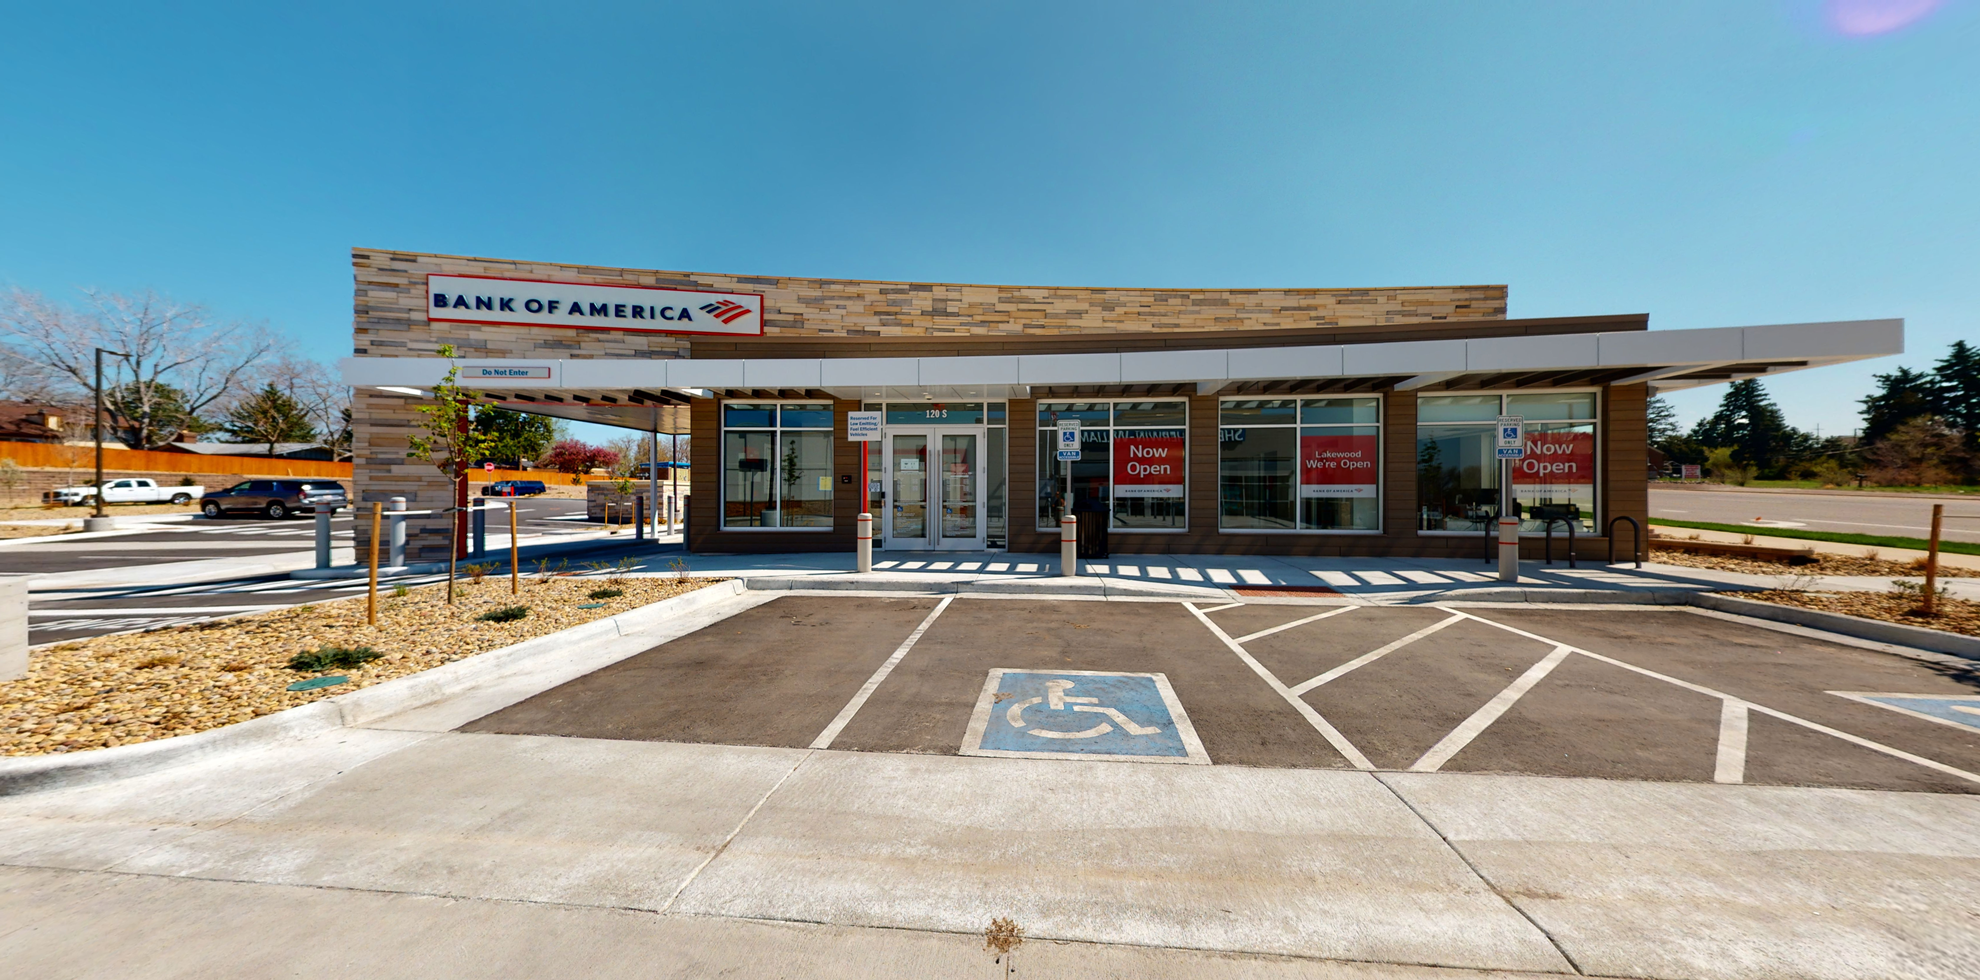 Bank of America financial center with drive-thru ATM | 120 S Wadsworth Blvd, Lakewood, CO 80226